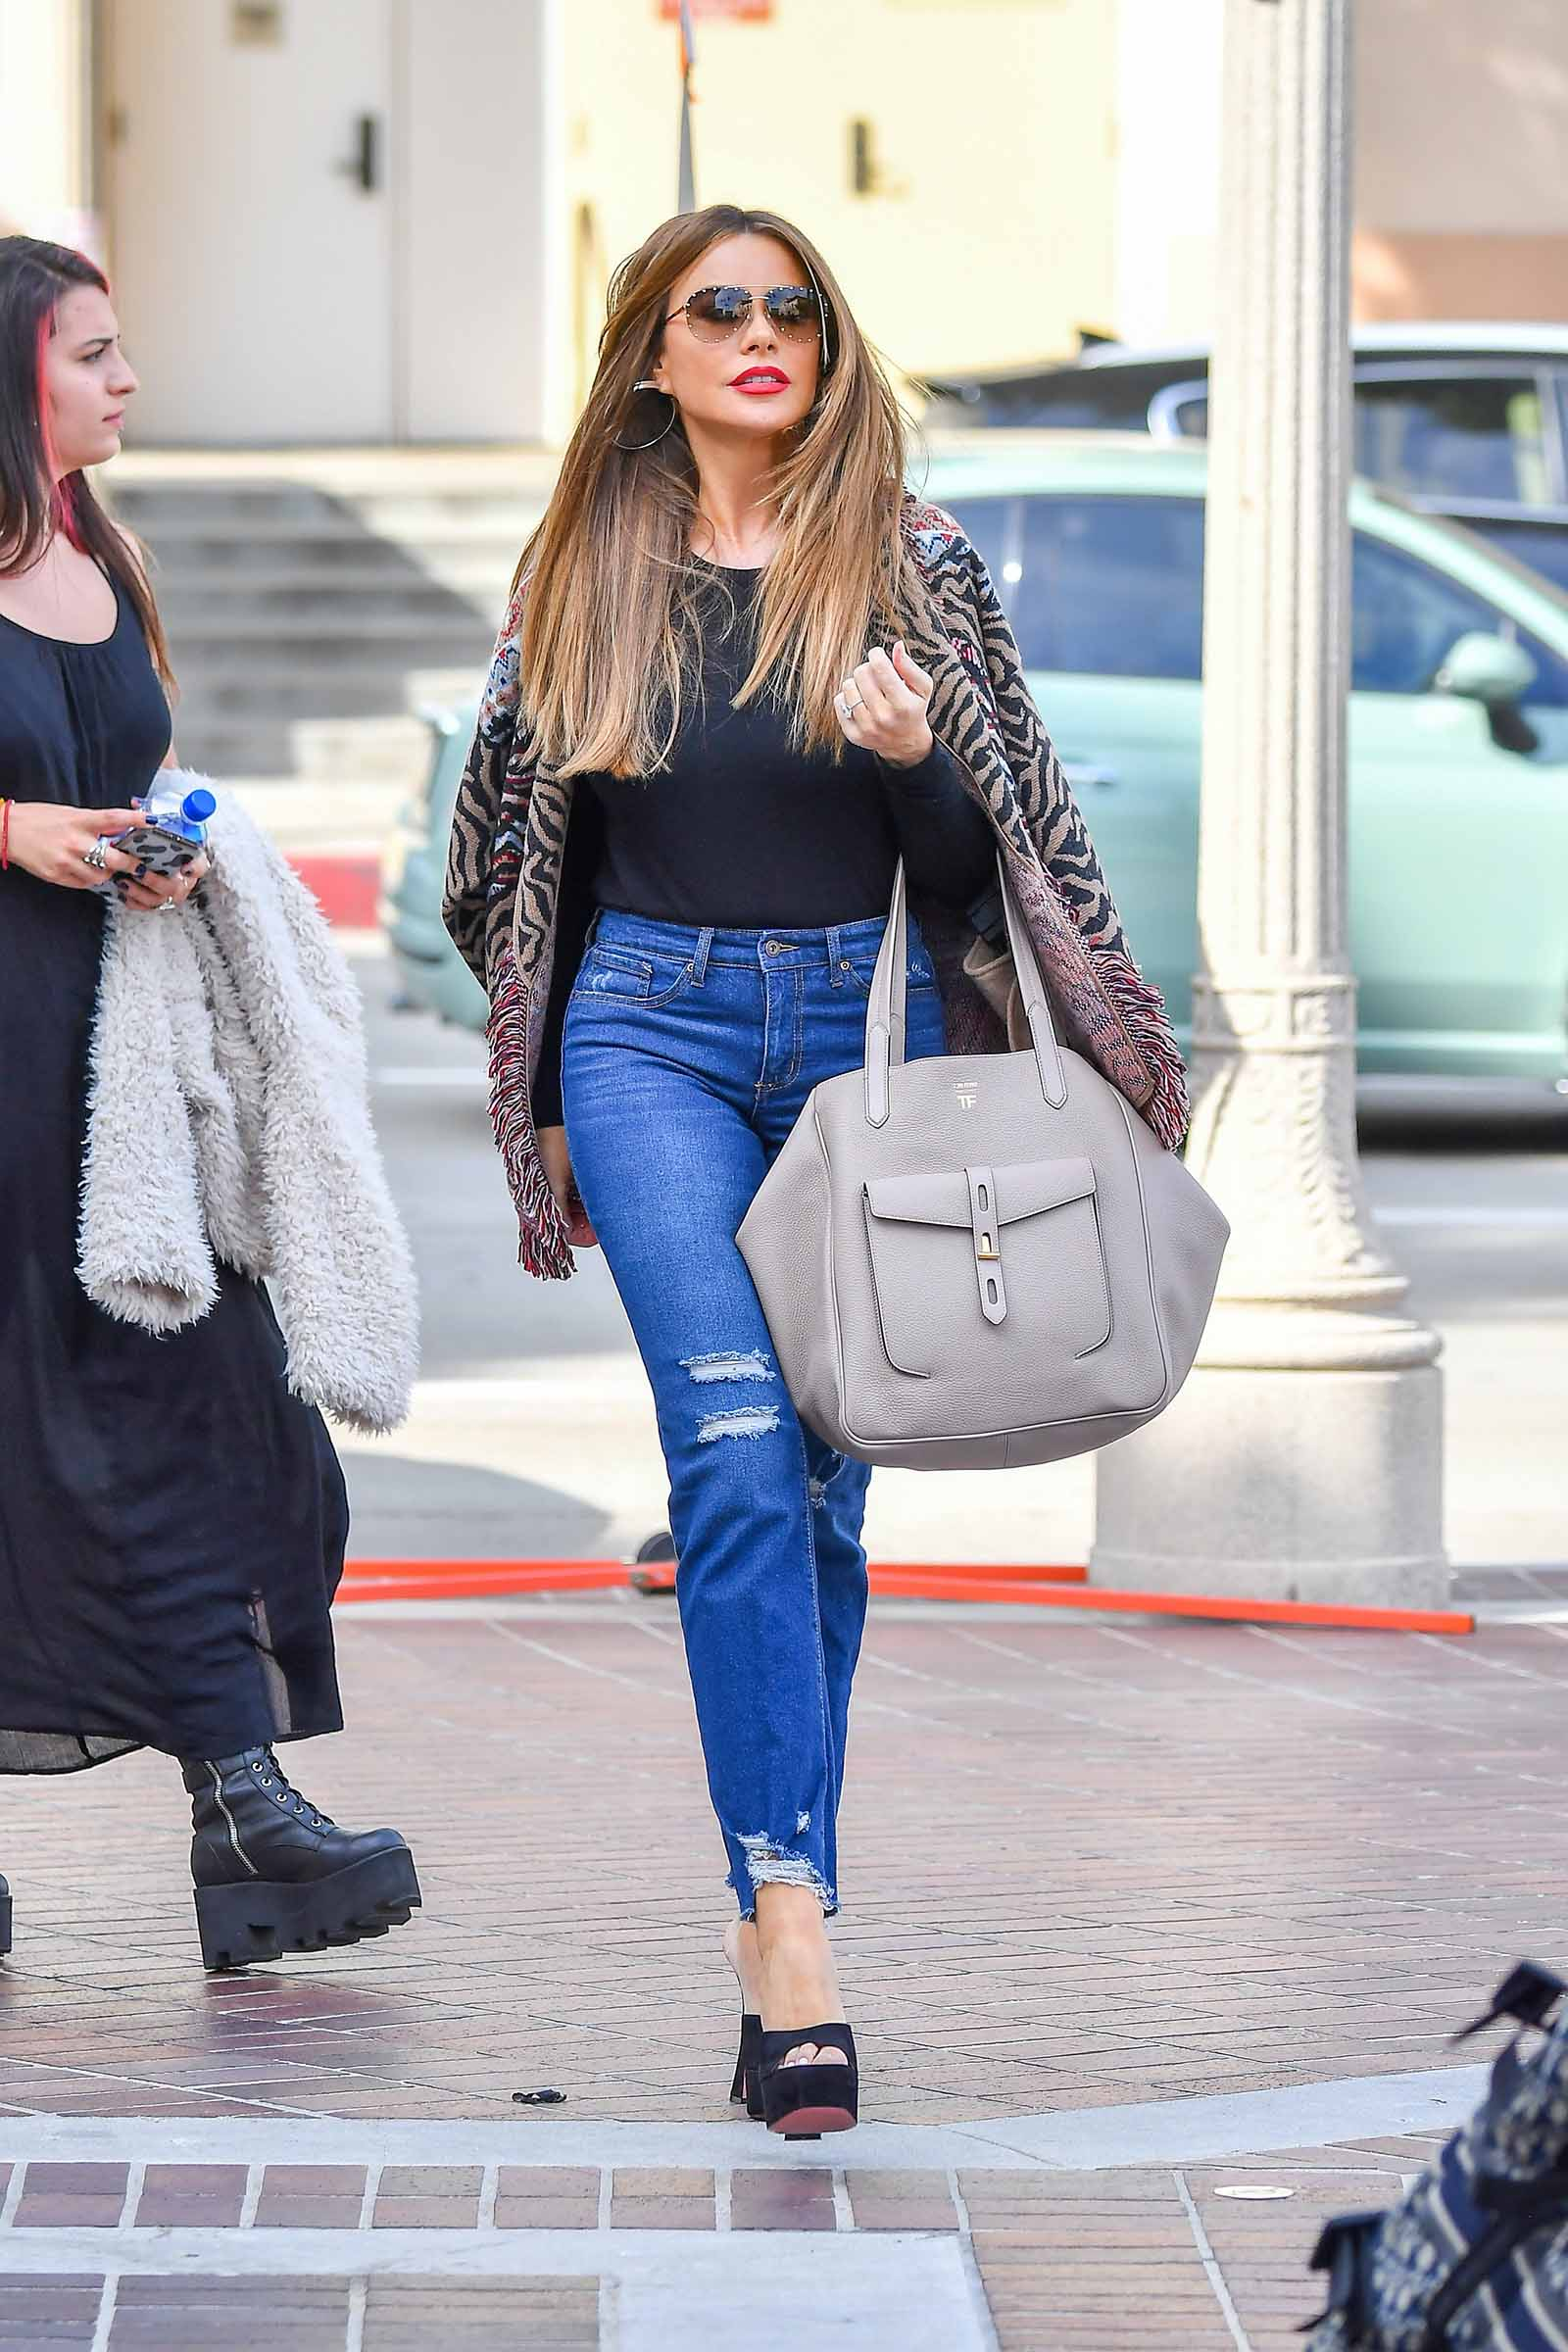 Sofia is chic in a cardigan and jeans.